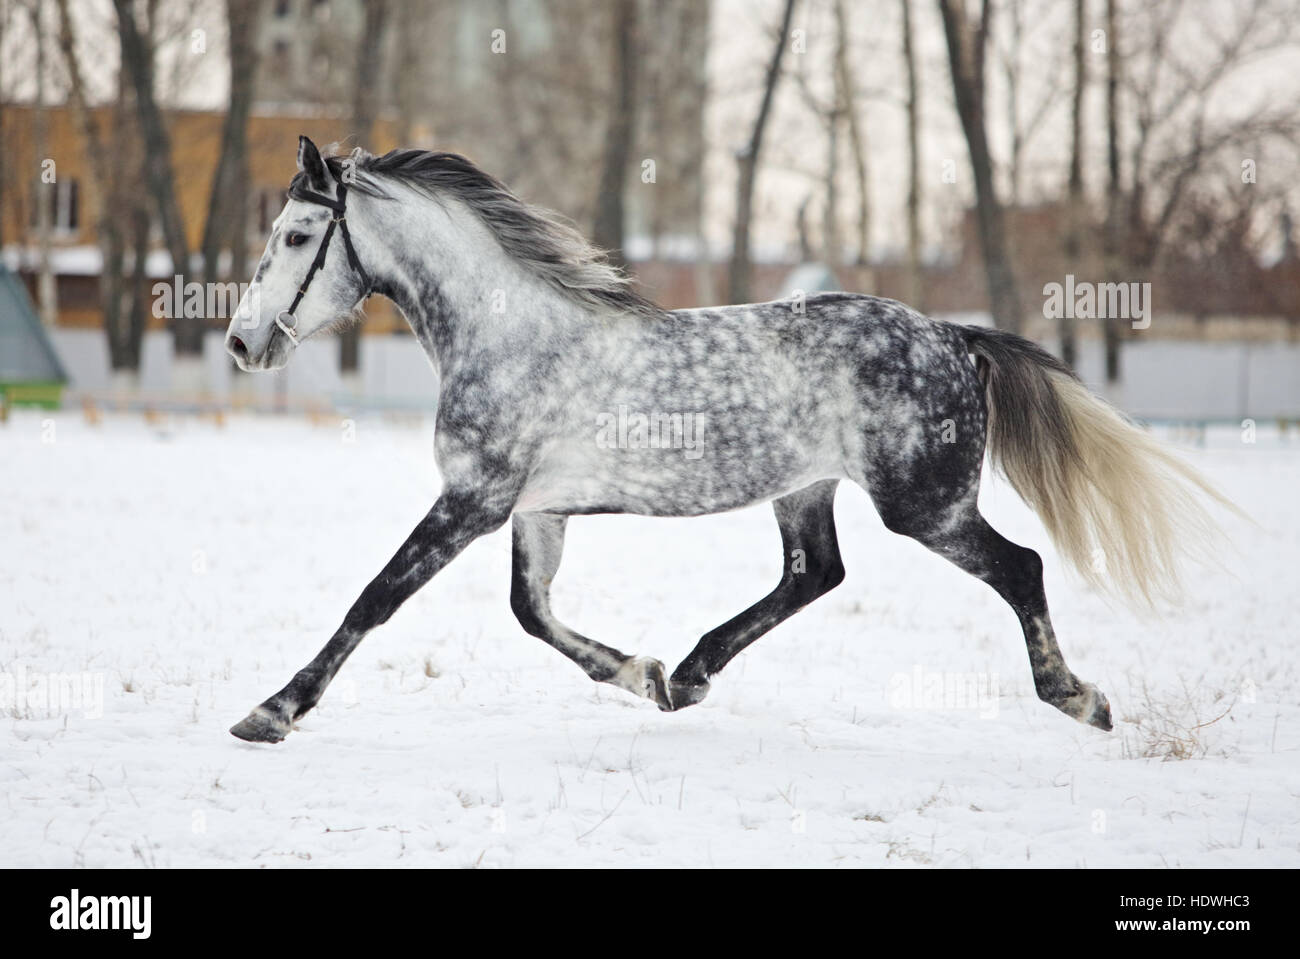 Dapple Grey Horse High Resolution Stock Photography and Images - Alamy